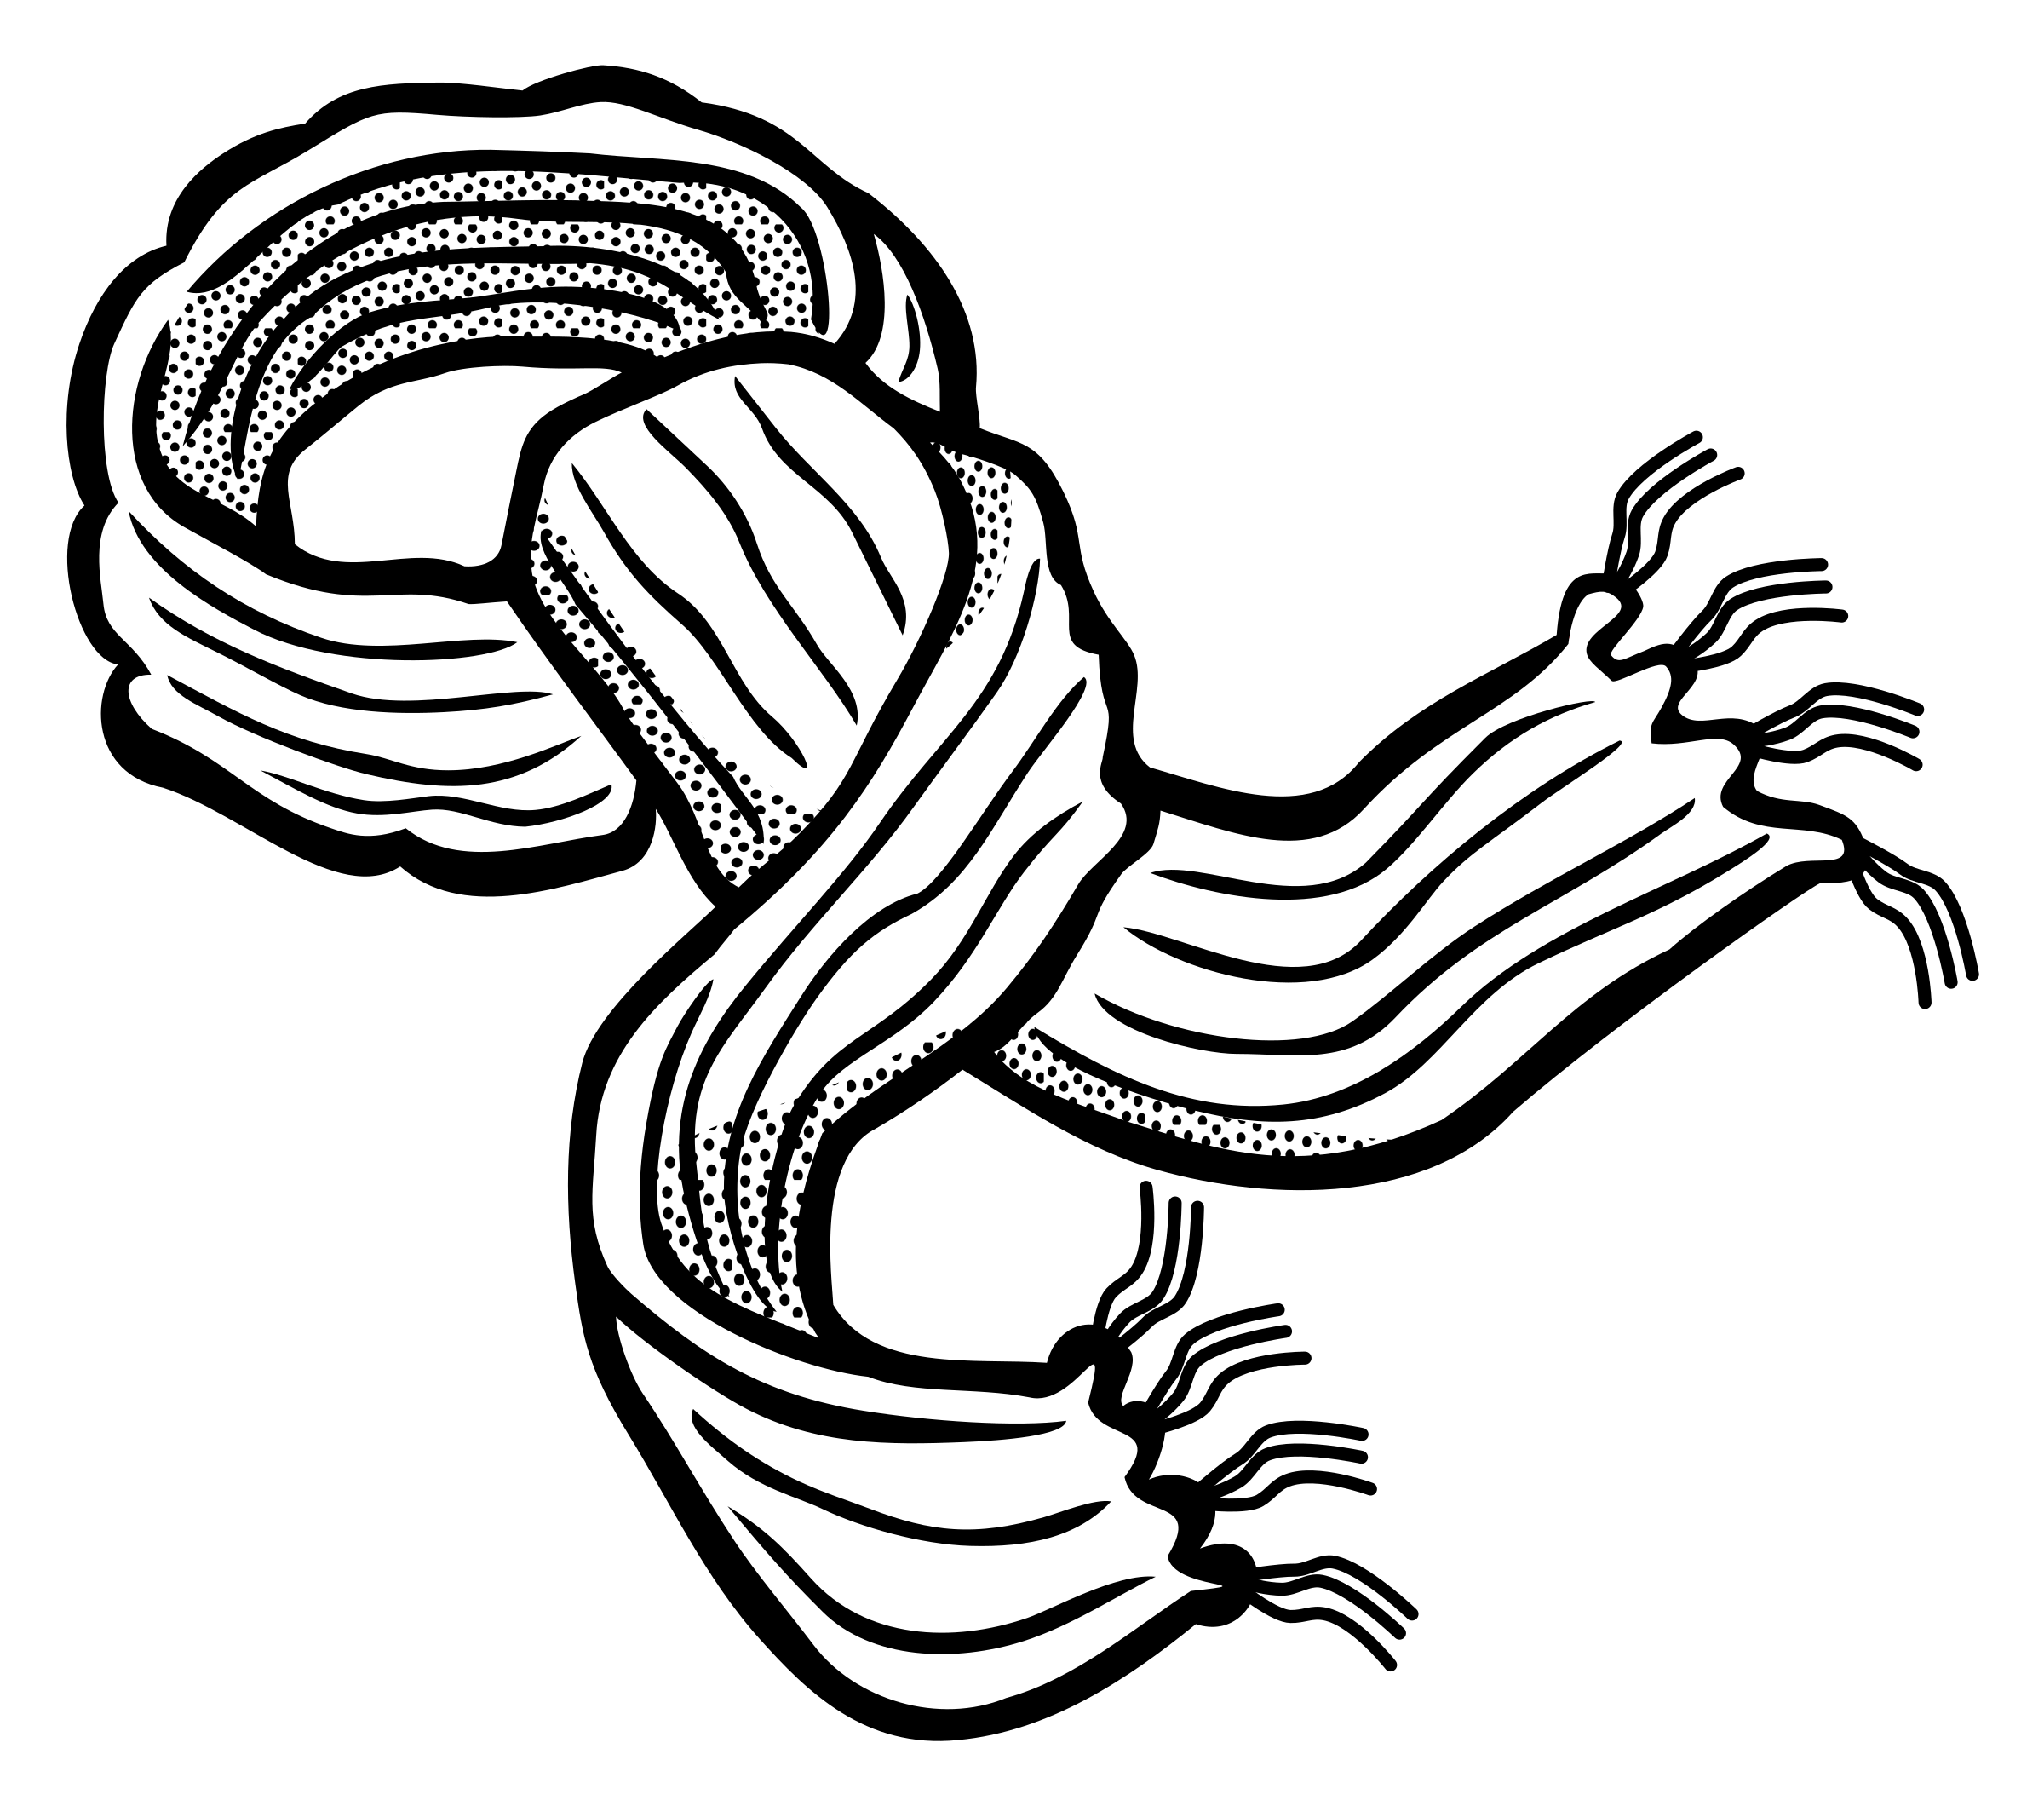 svg black and white Transparent png stickpng. Scarf clipart.